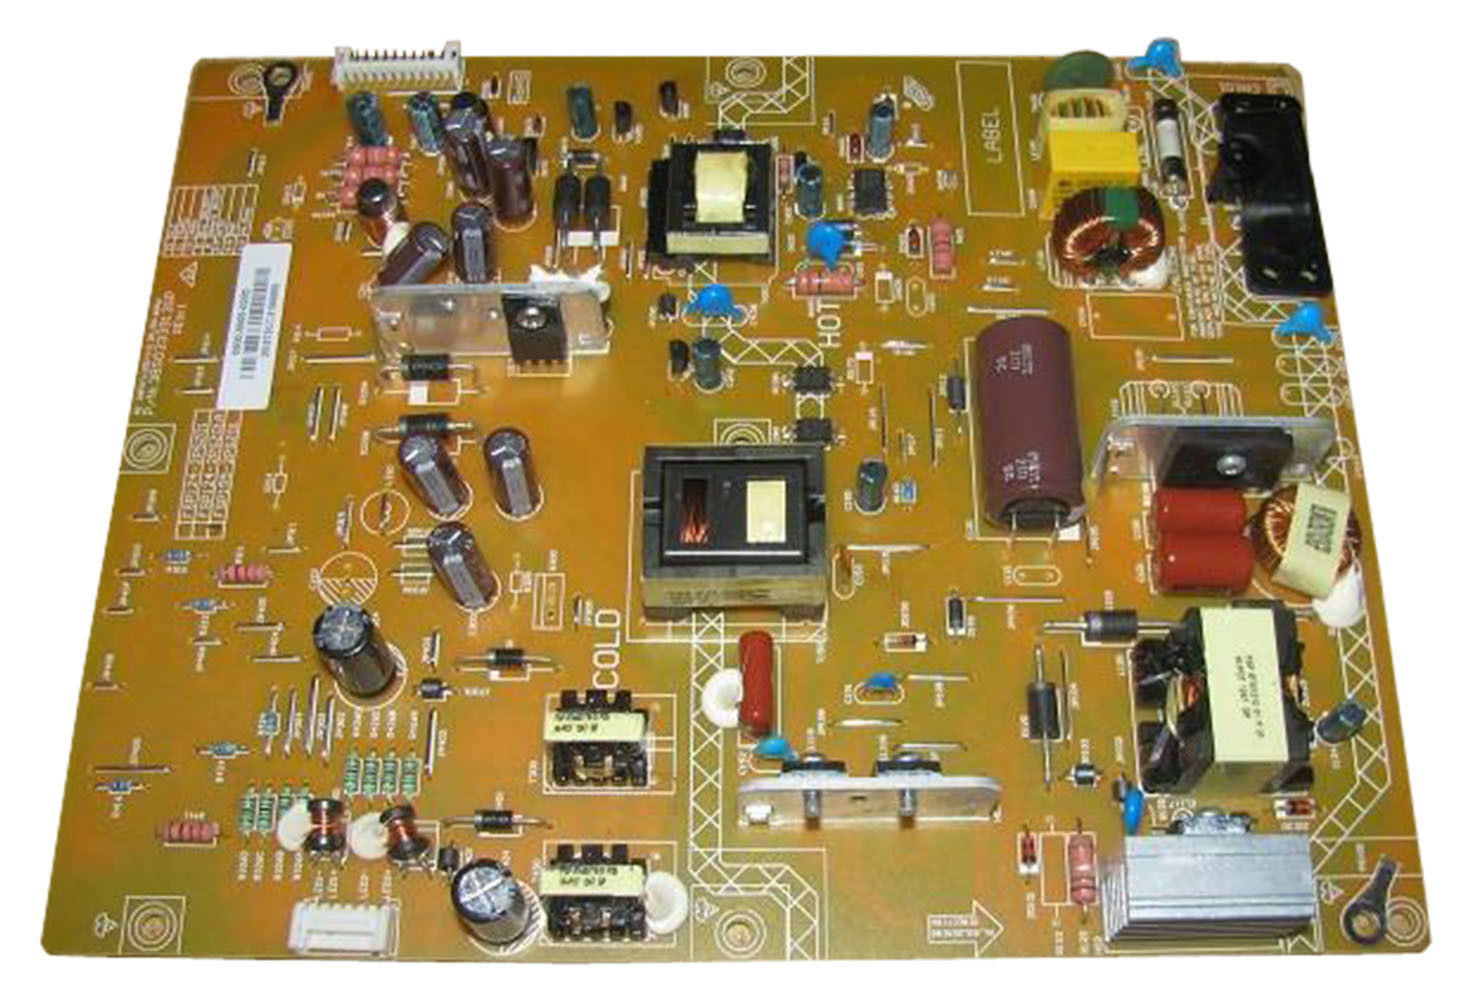 Vizio 0500-0605-0280 (FSP155-2PSZ01) Power Supply/LED Board